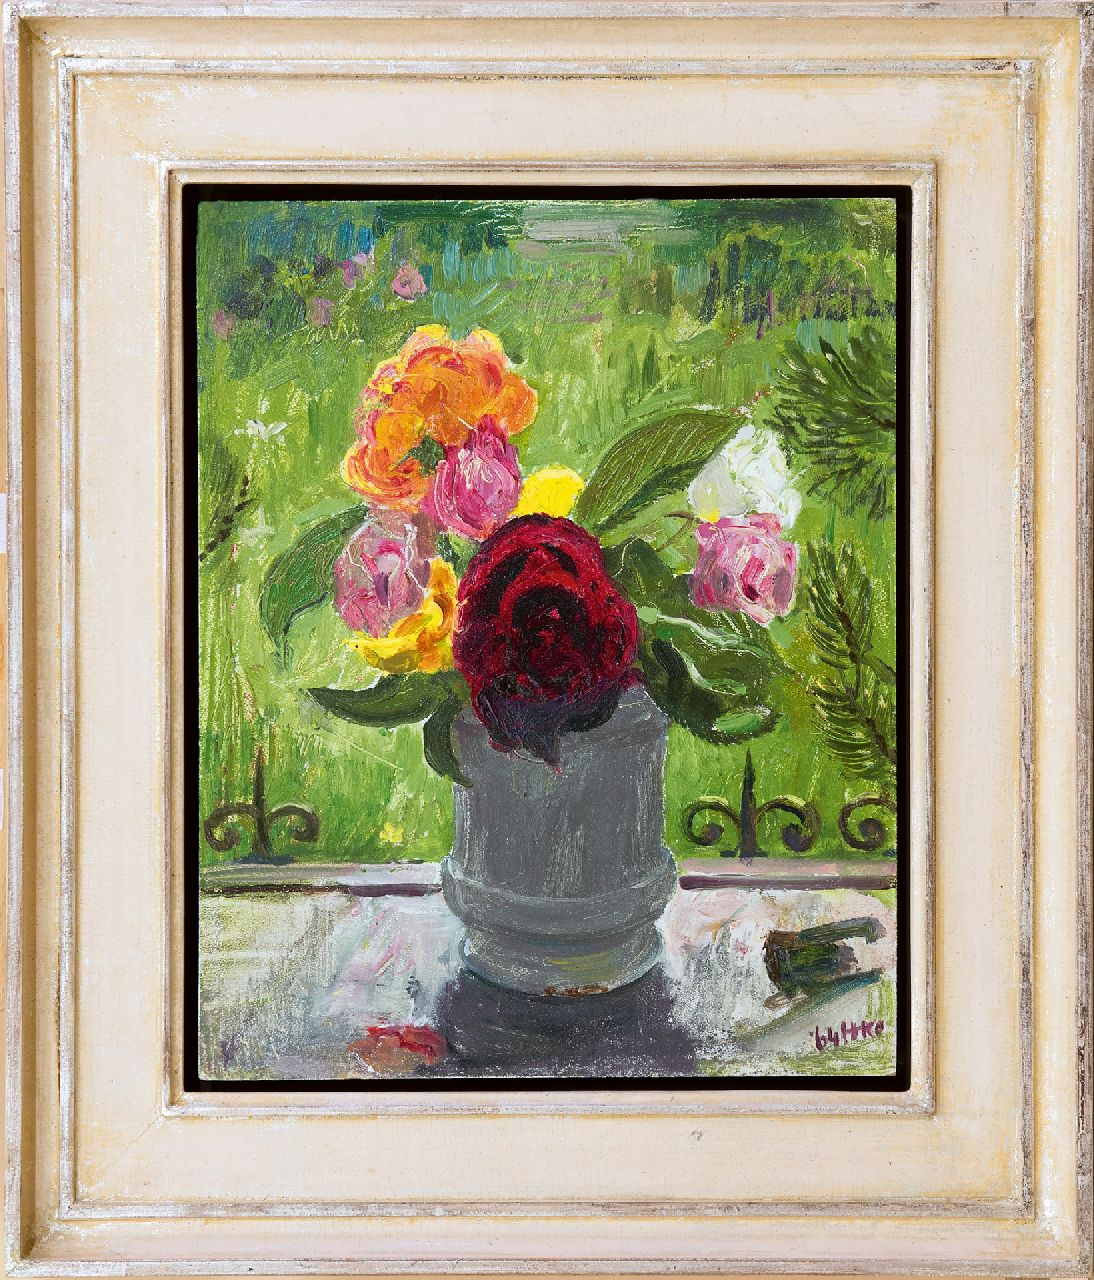 Kamerlingh Onnes H.H.  | 'Harm' Henrick Kamerlingh Onnes, Roses on a window sill, oil on panel 30.5 x 24.6 cm, signed l.r. with monogram and dated '64